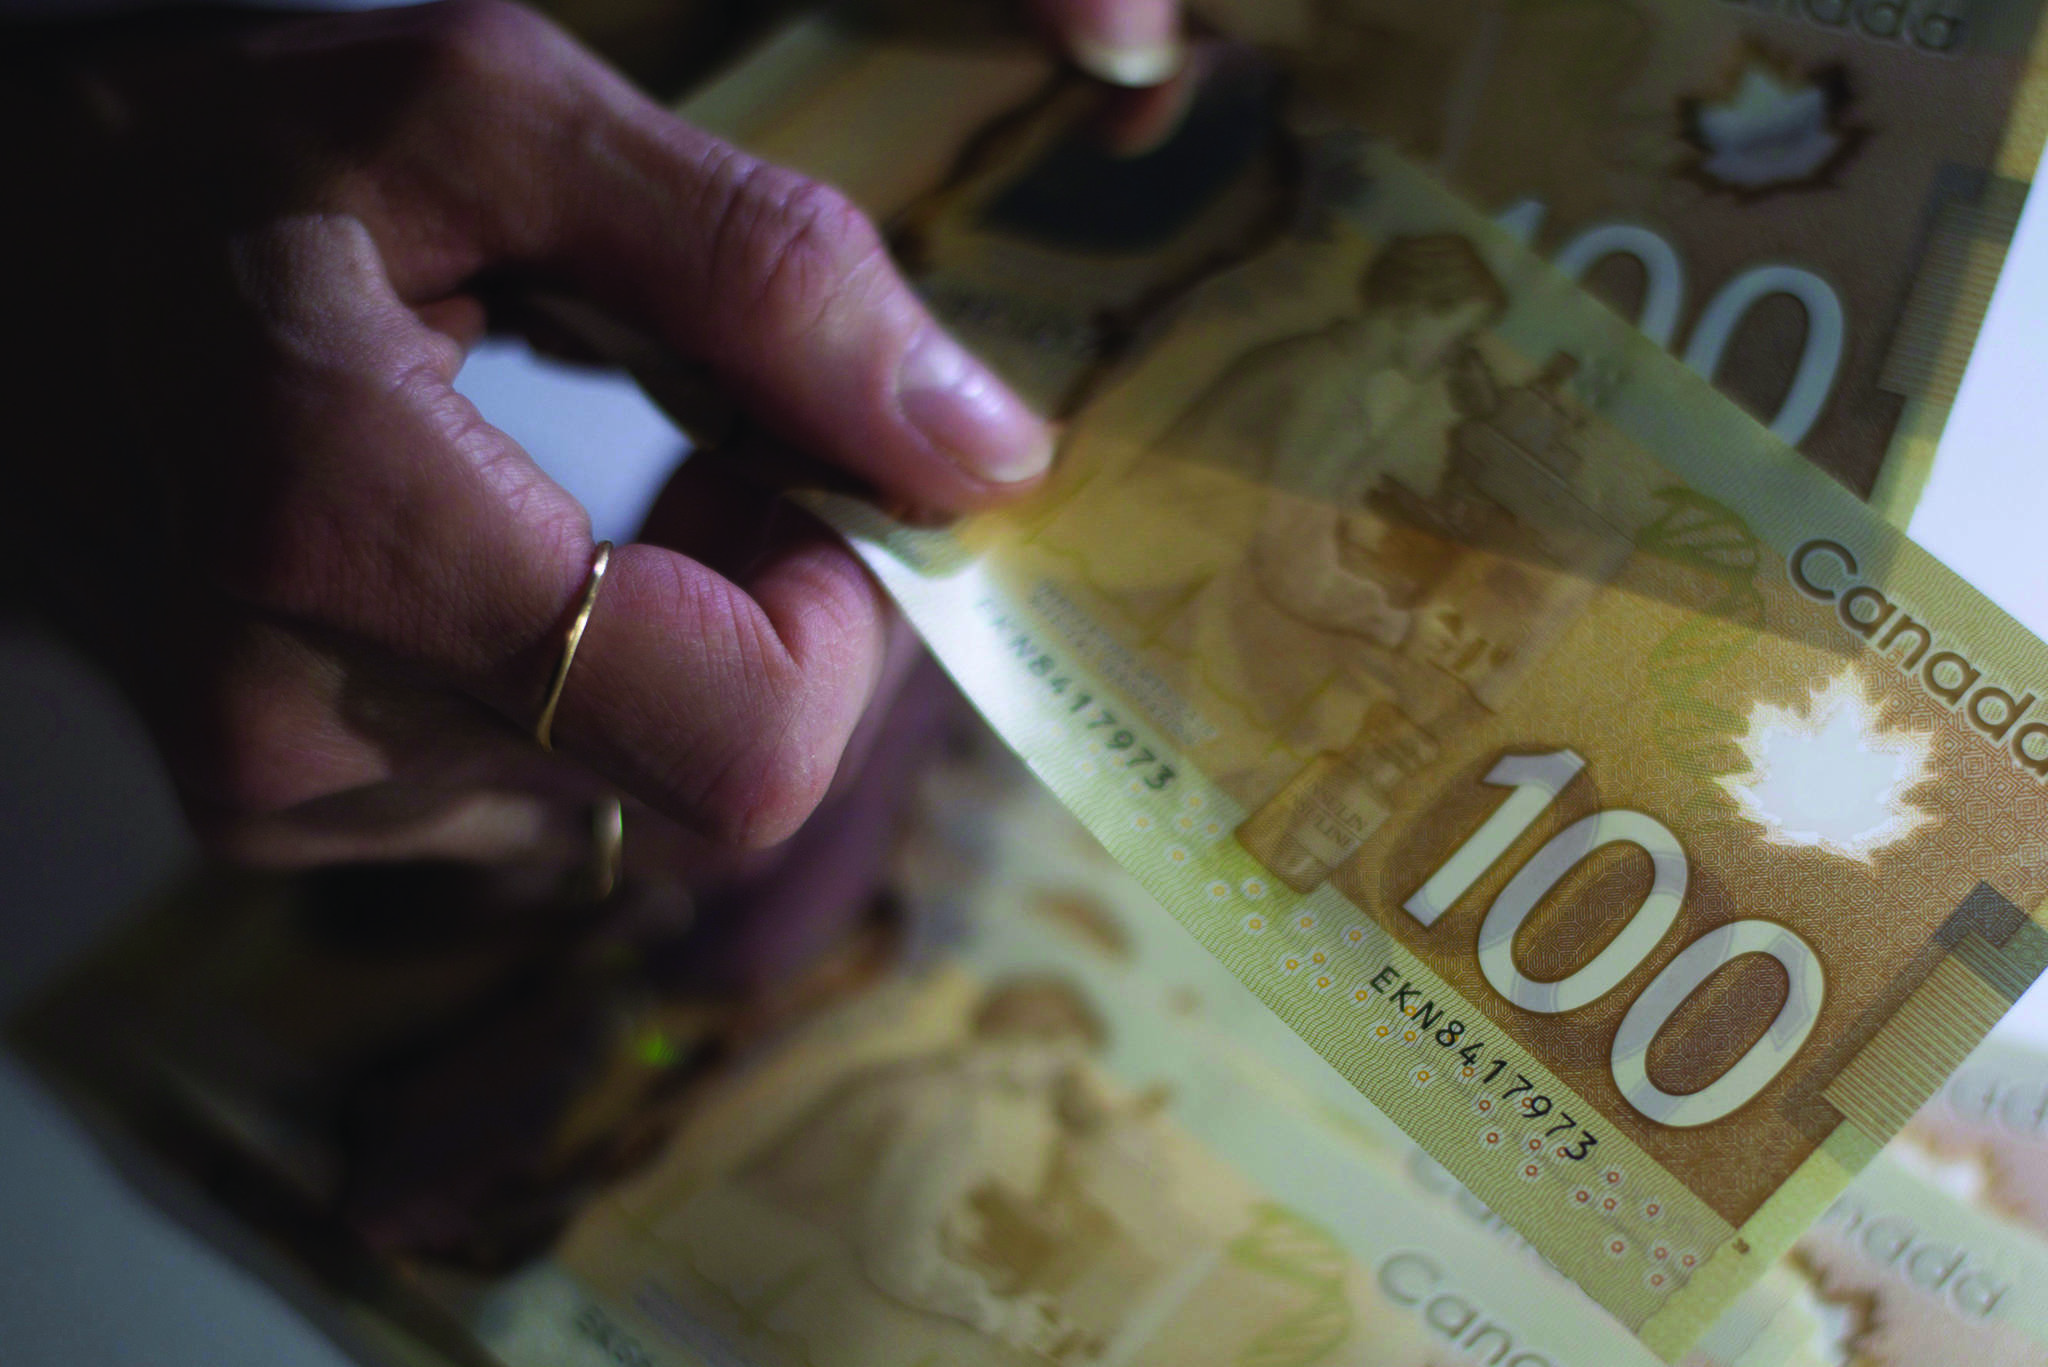 Canadians saw their national wealth drop in the last quarter of 2018. The 'national wealth' of a single Canadian fell from $304,085 to $296,933. THE CANADIAN PRESS/Graeme Roy